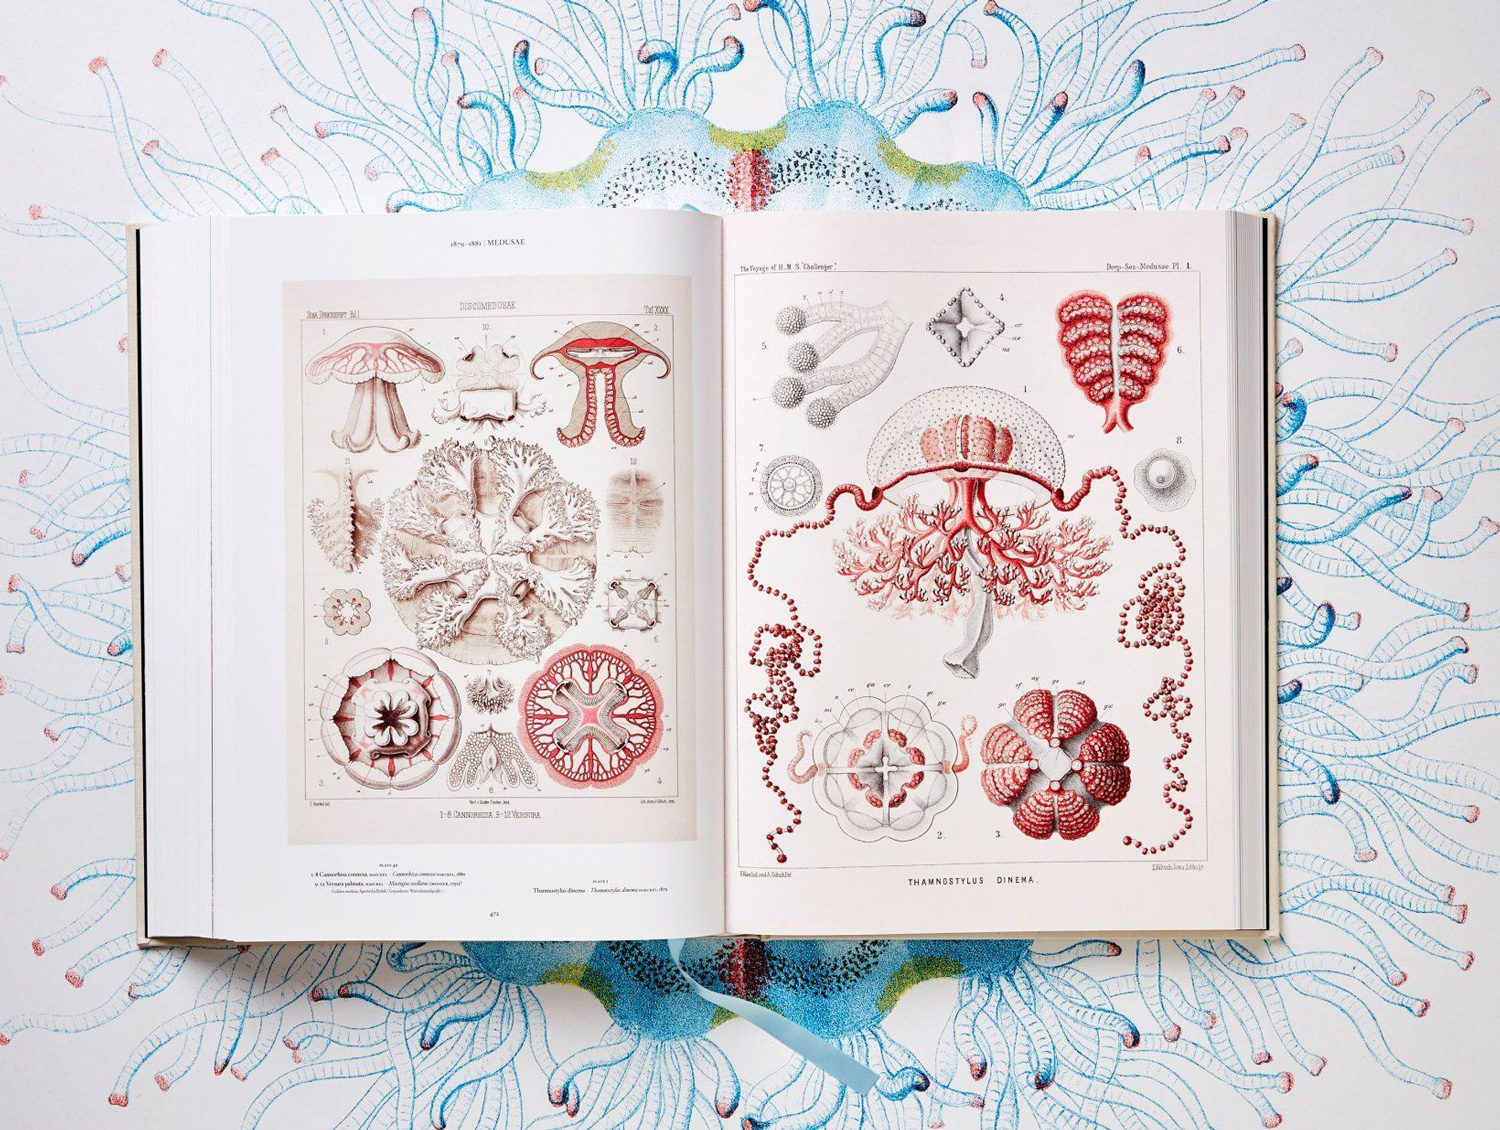 The Art And Science Of Ernst Haeckel A Compendium Of